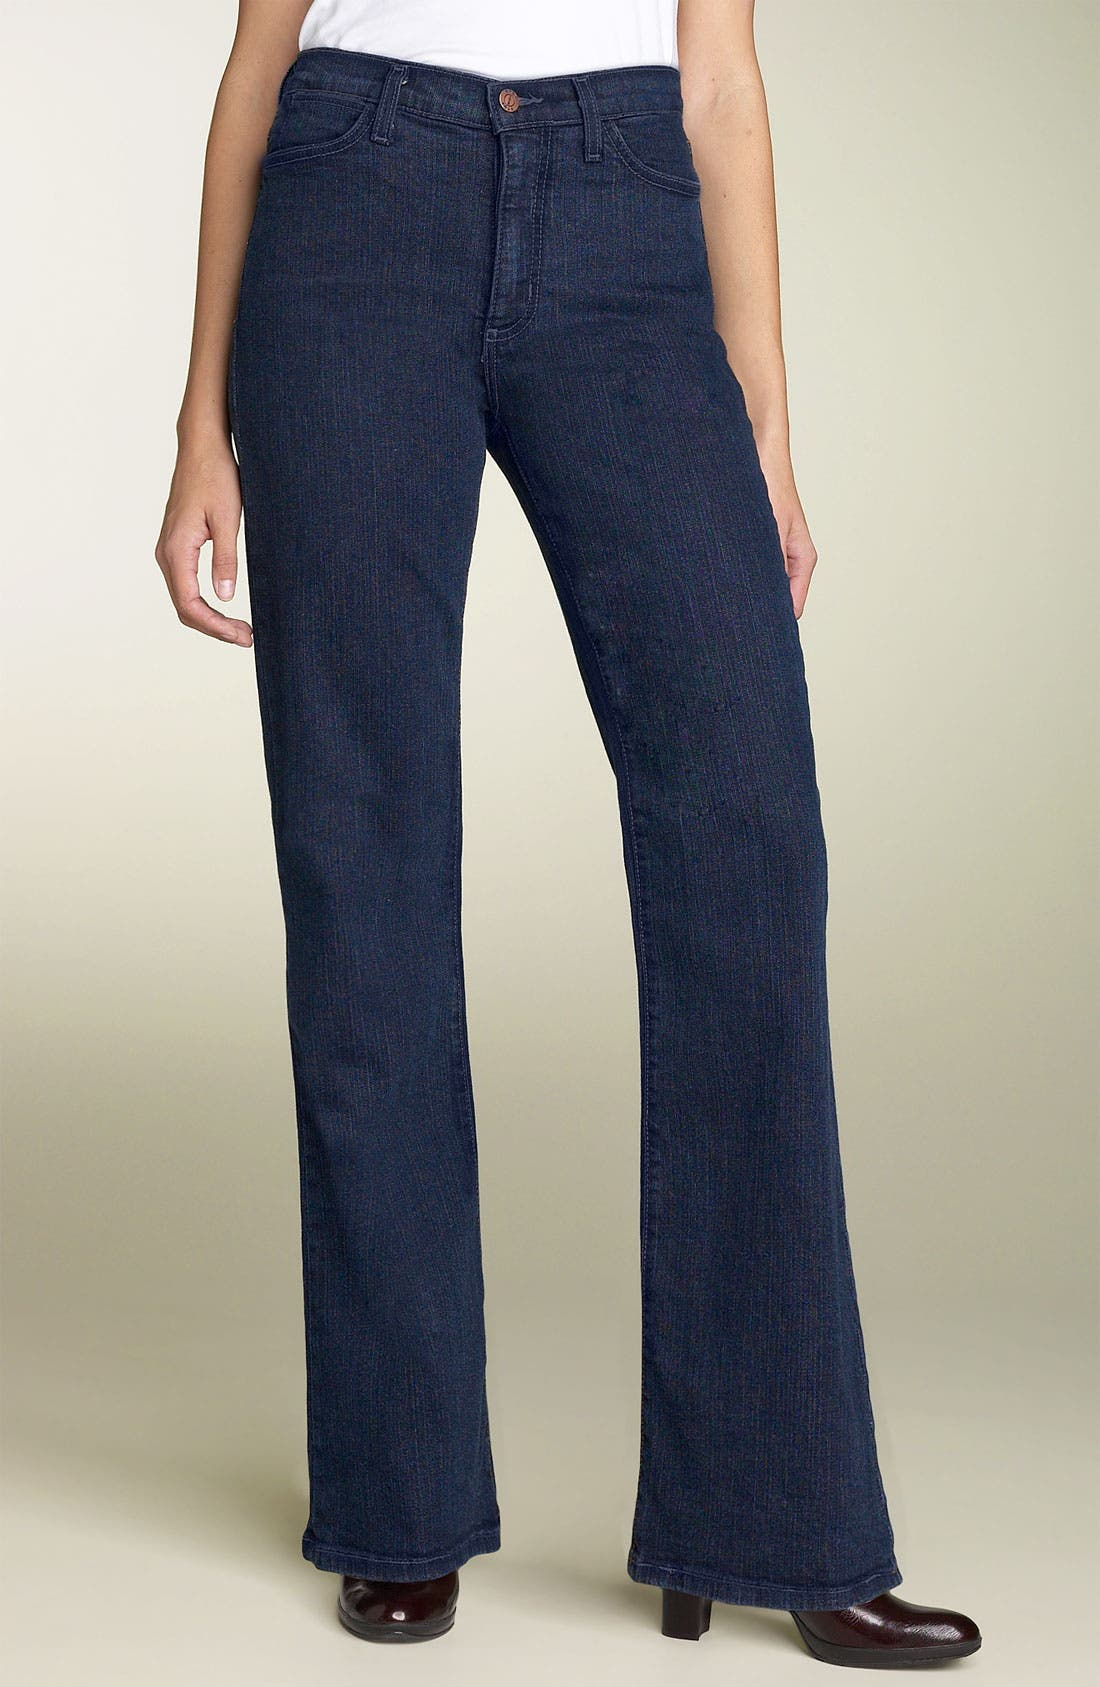 Alternate Image 1 Selected - NYDJ Bootcut Stretch Jeans (Long)